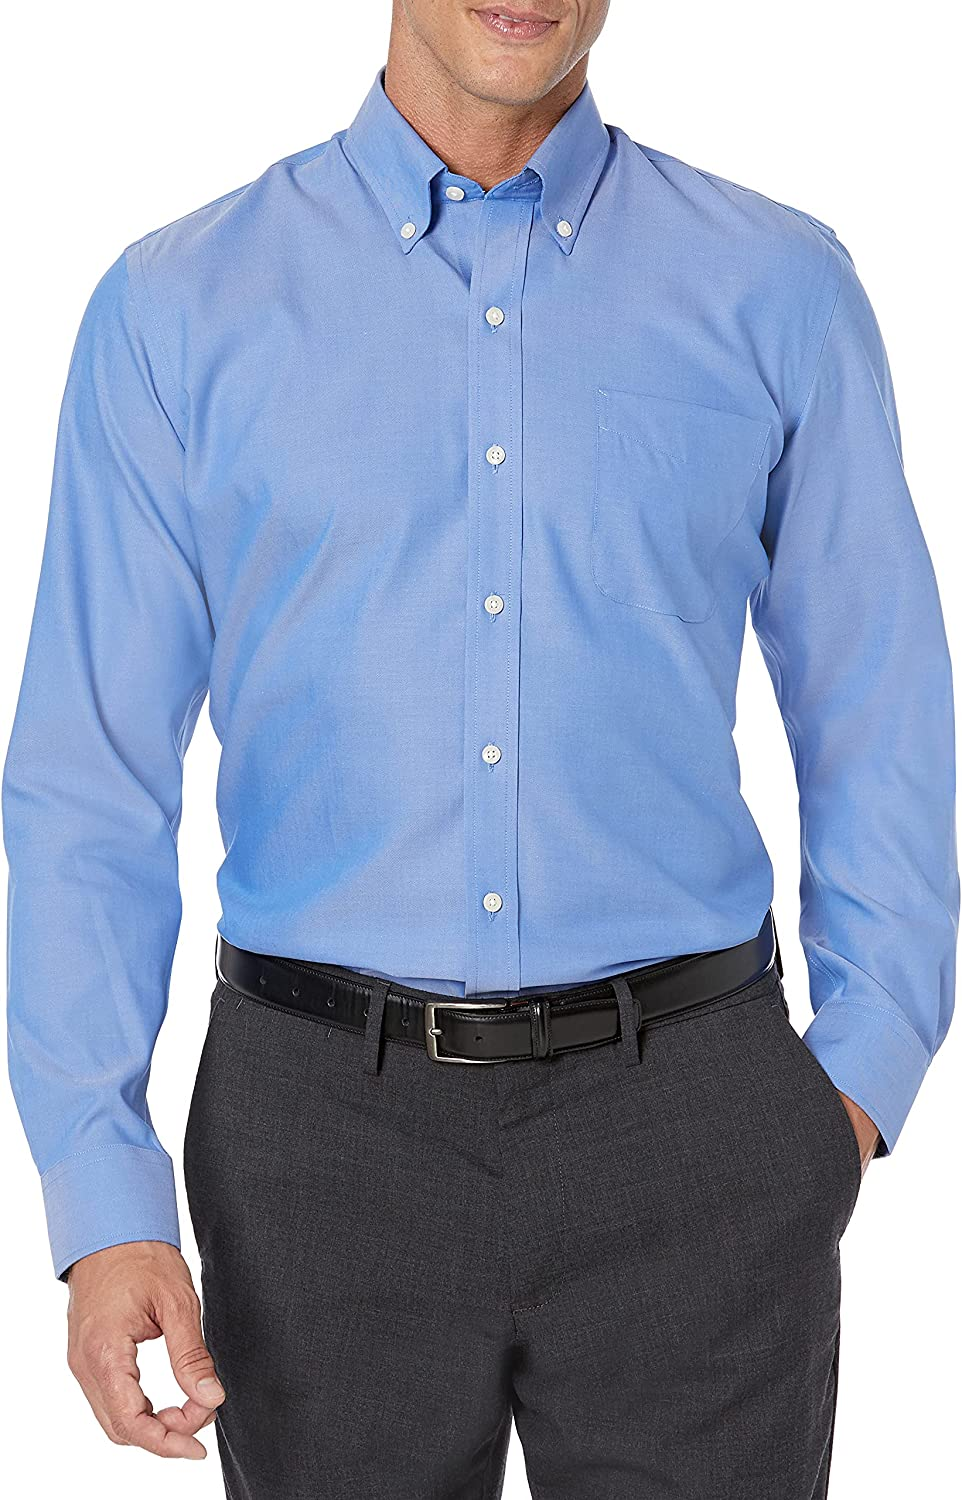 Max 83% OFF Buttoned Down Men's quality assurance Slim Fit Dress Shirt Collar Button Solid